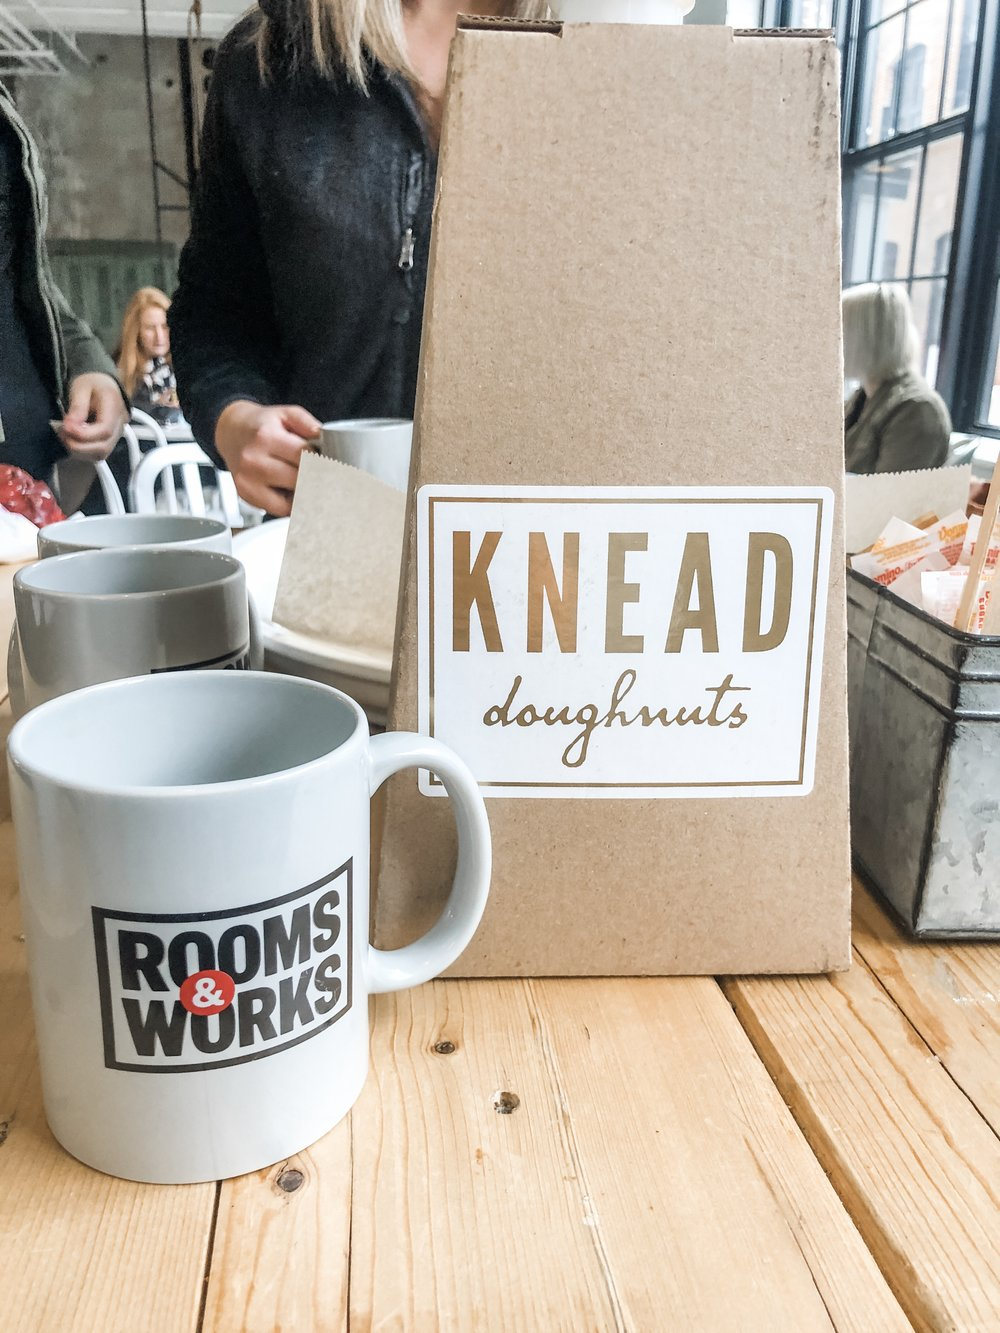 We loved having Rooms & Works mugs to use for our coffee!